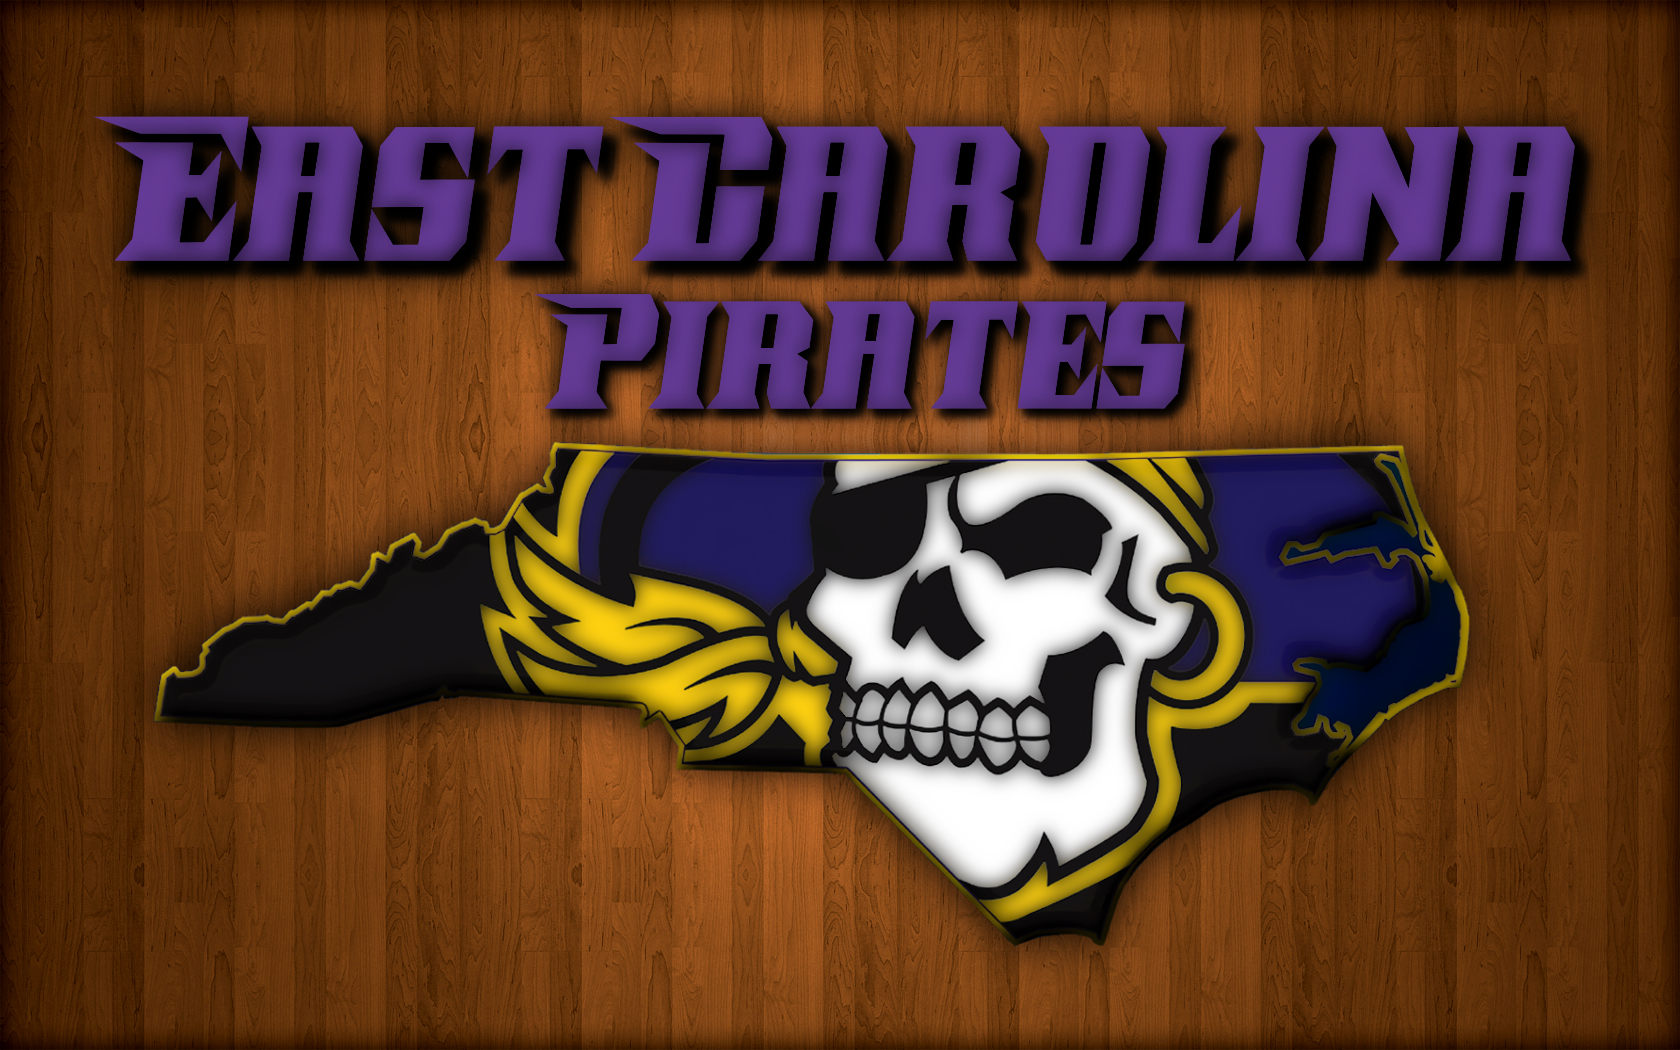 Pin Ecu Pirates Wallpaper 1680x1050